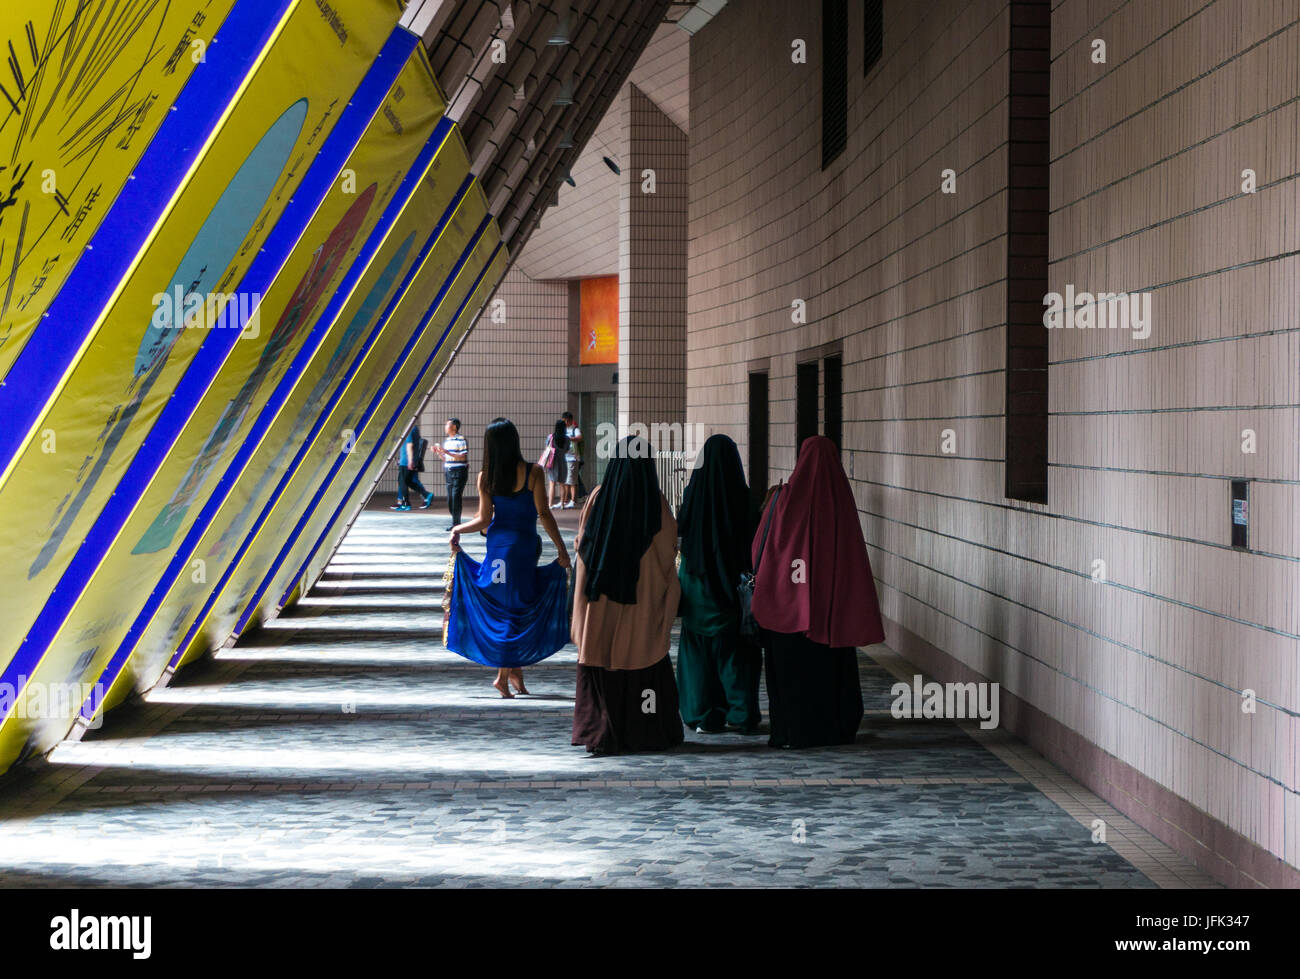 Three female Muslim tourists wearing hijabs (headscarves) in Hong Kong, architecture backdrop angled columns - Stock Image